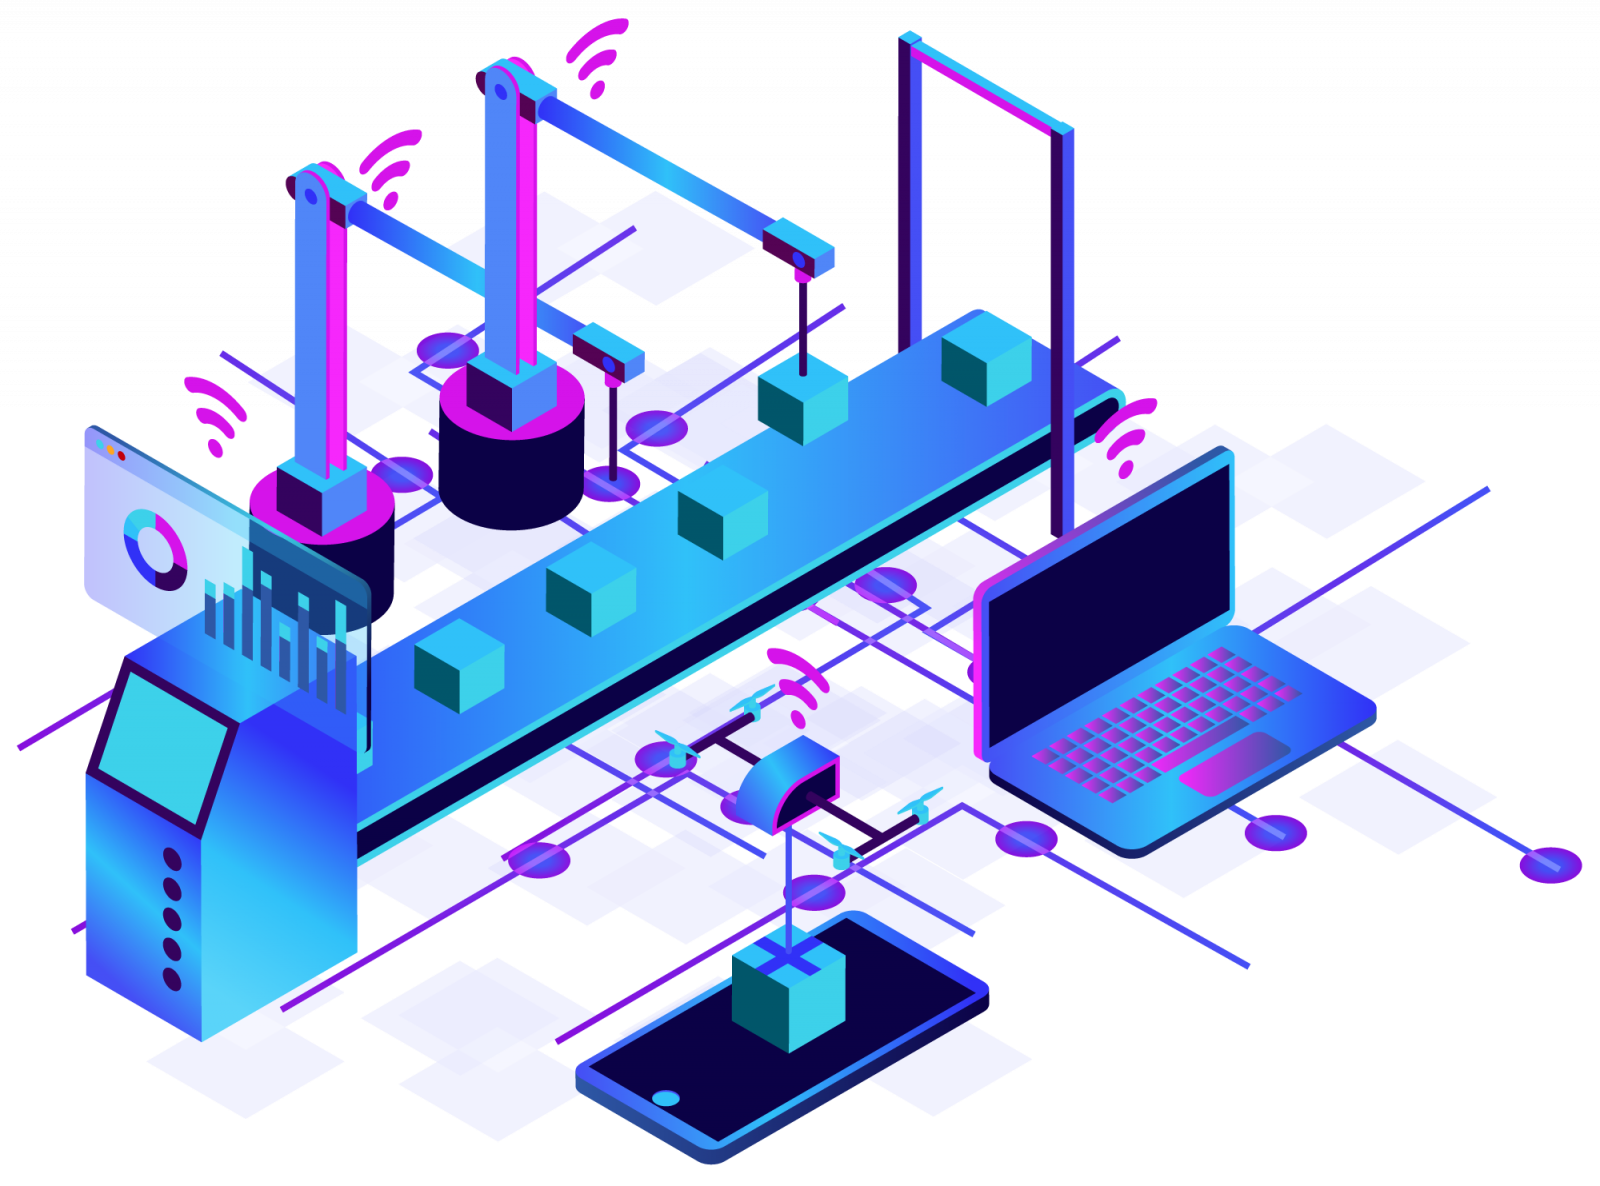 Industrial & Manufacturing Smart Factory